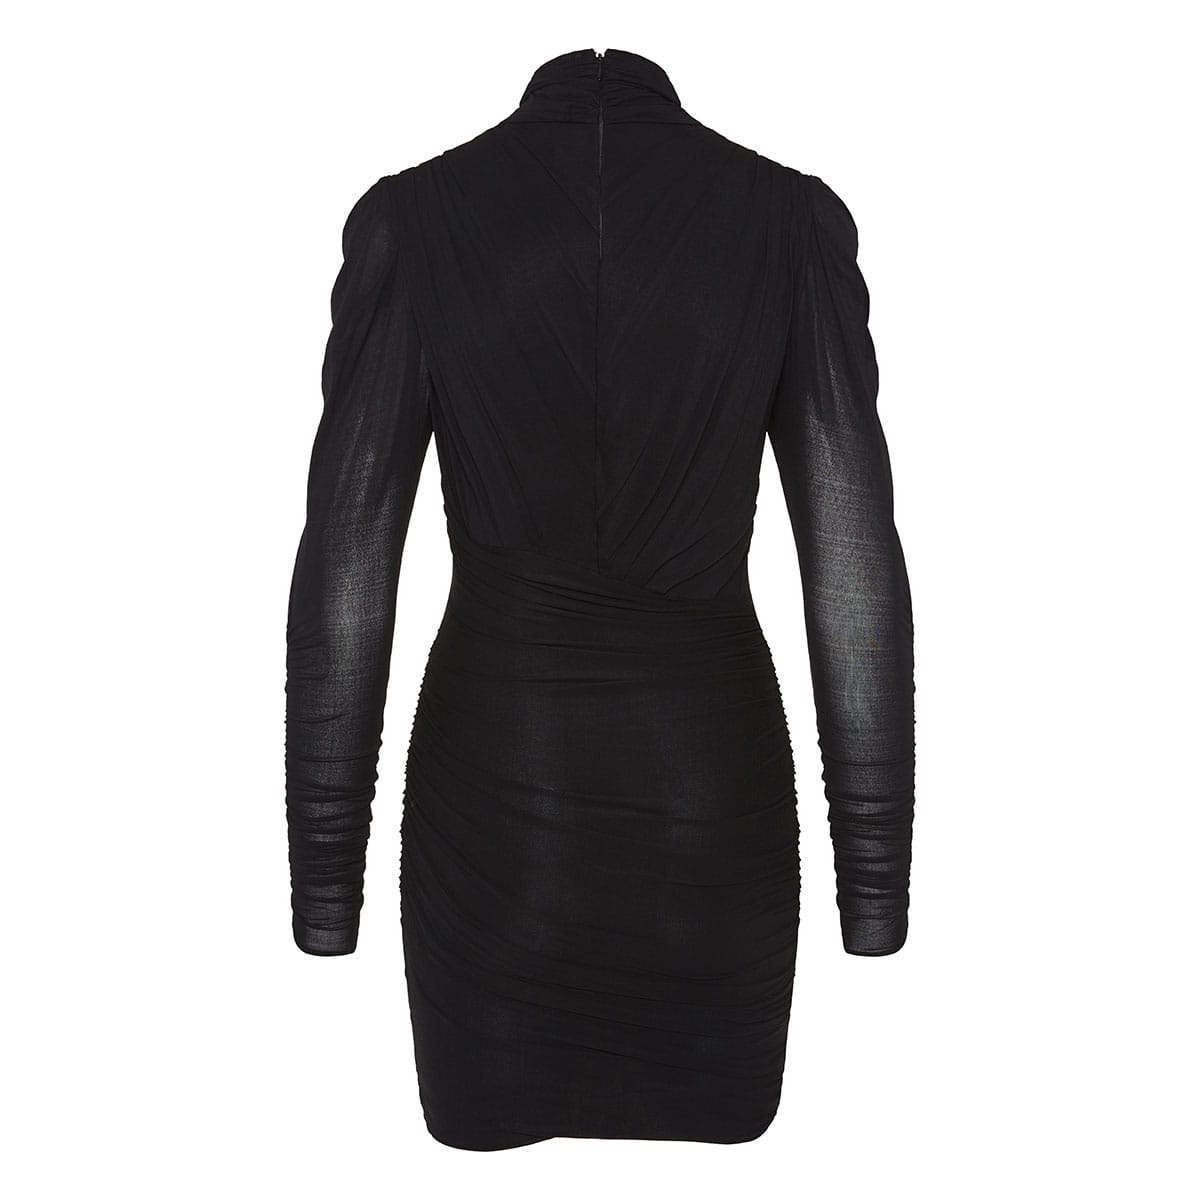 Jisola ruched mini dress